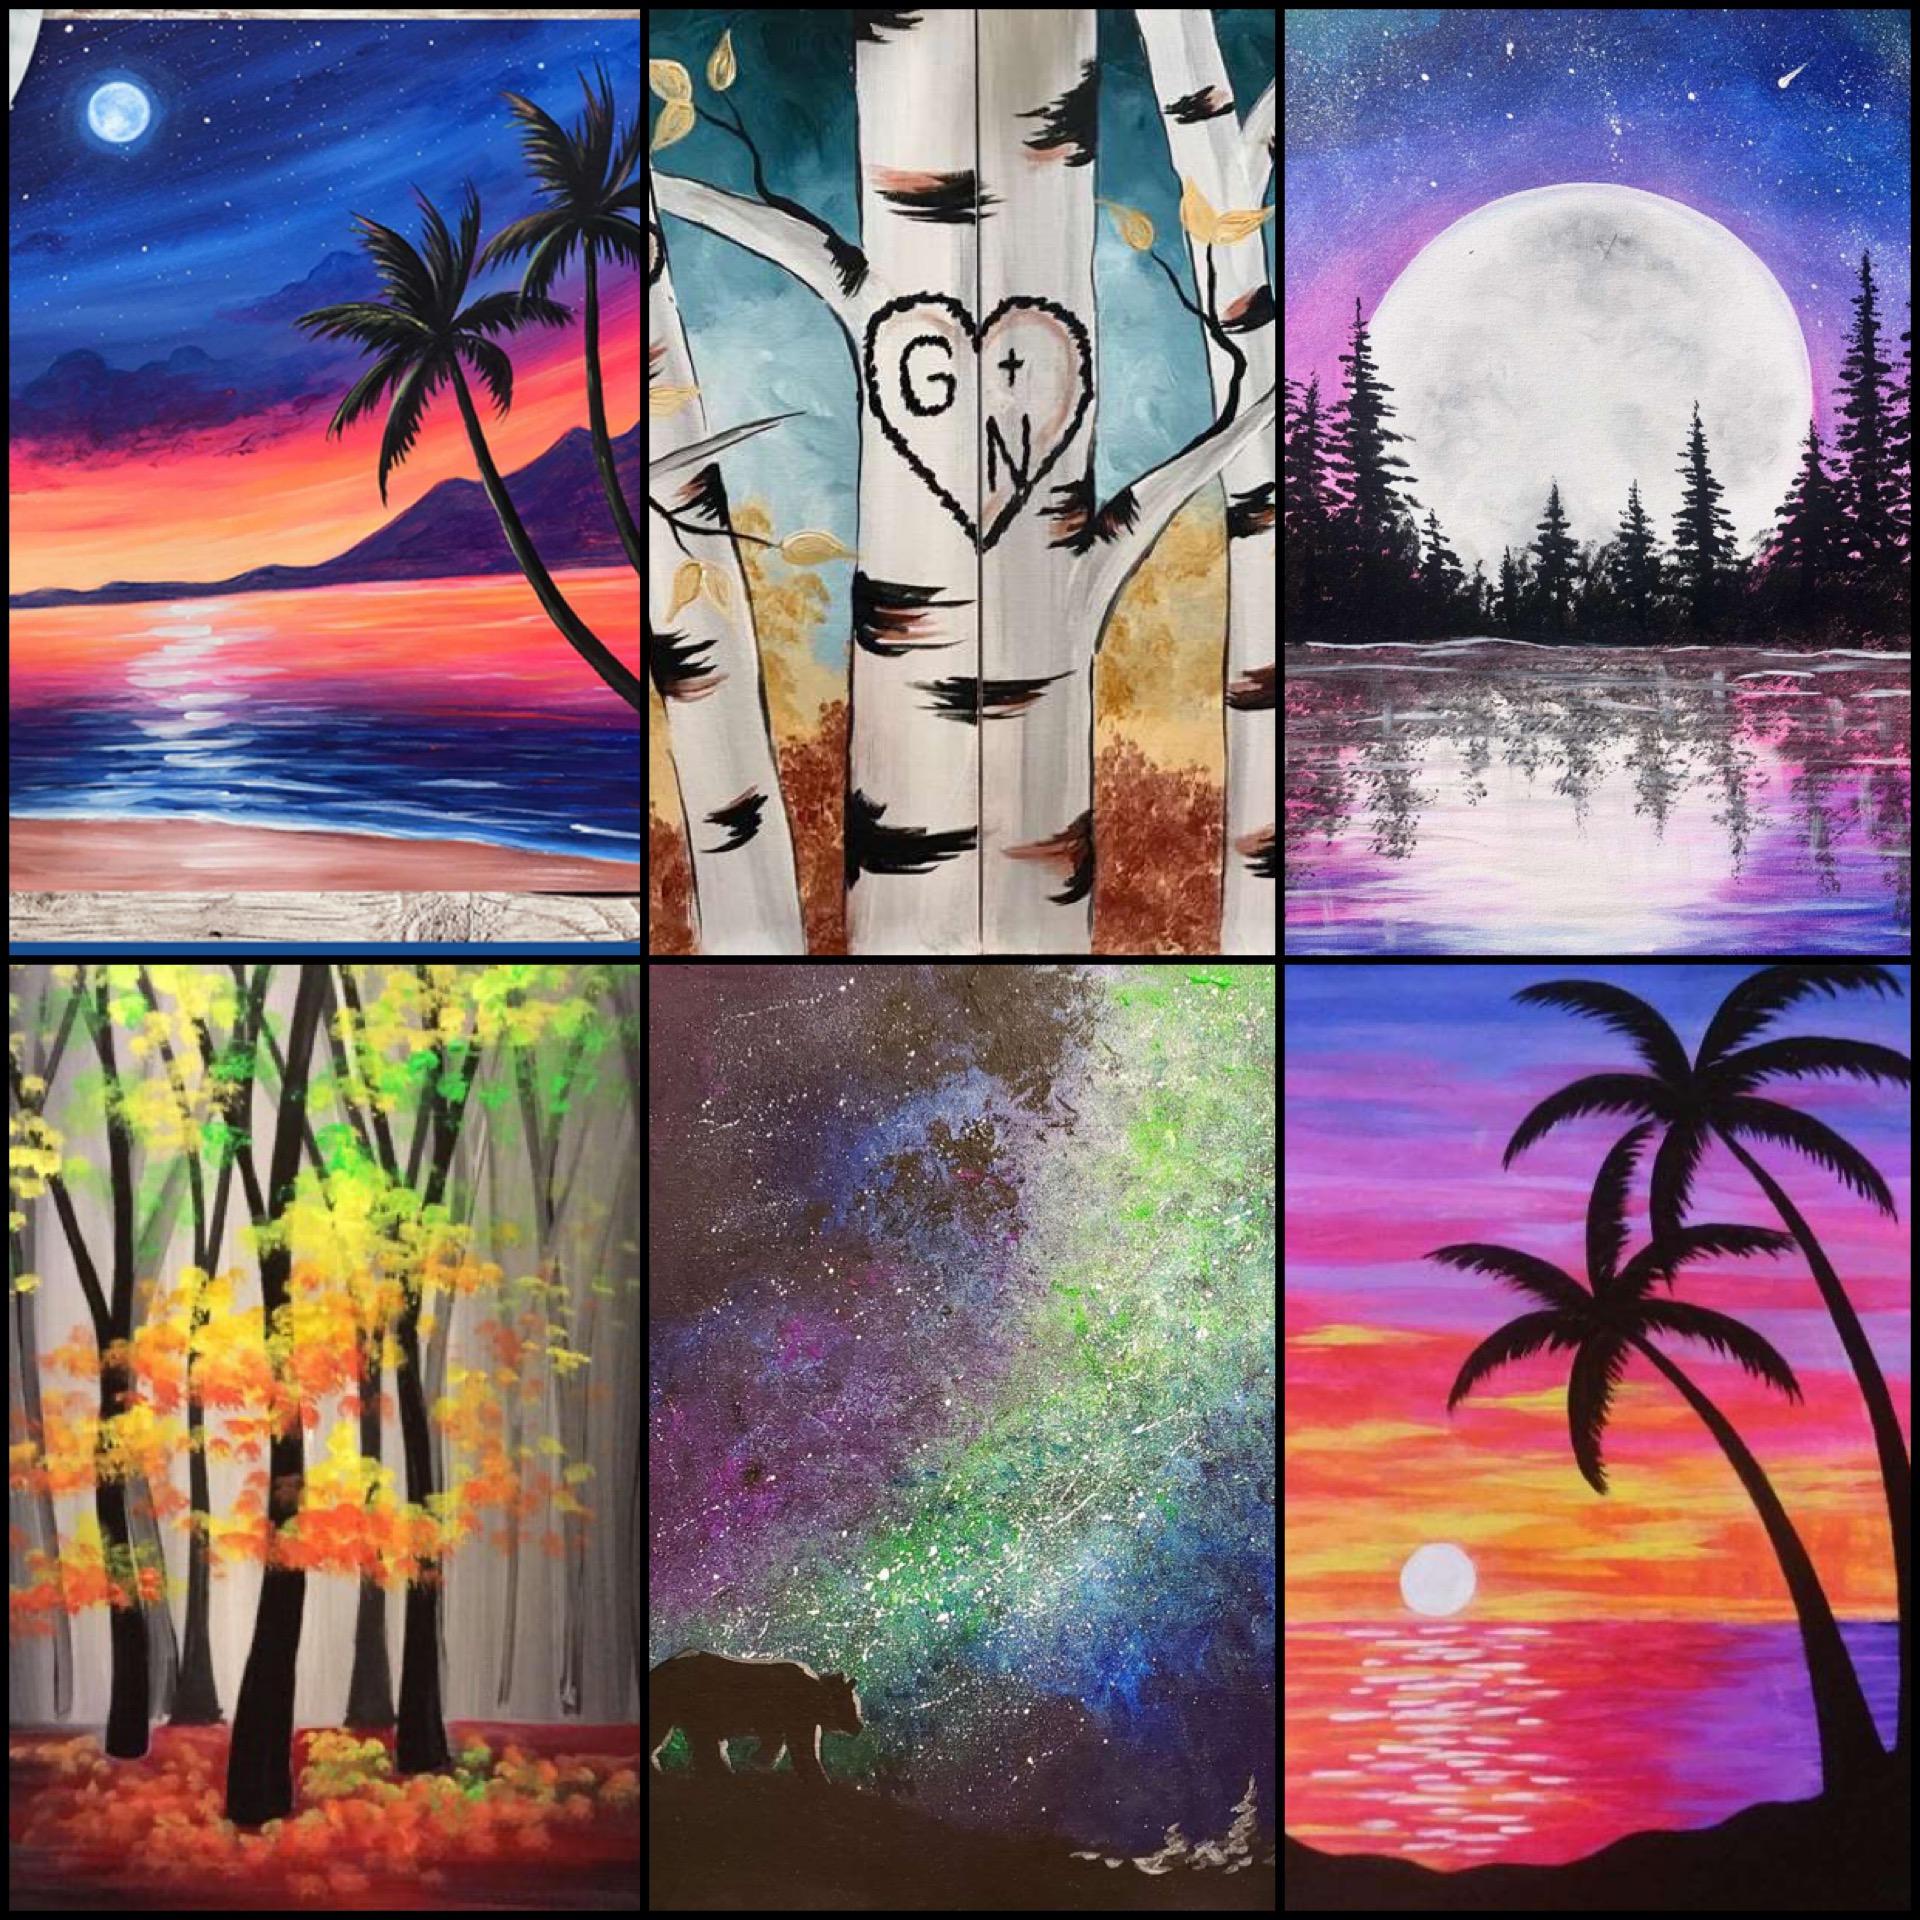 Stunning Landscapes For End of Summer/Start of Fall